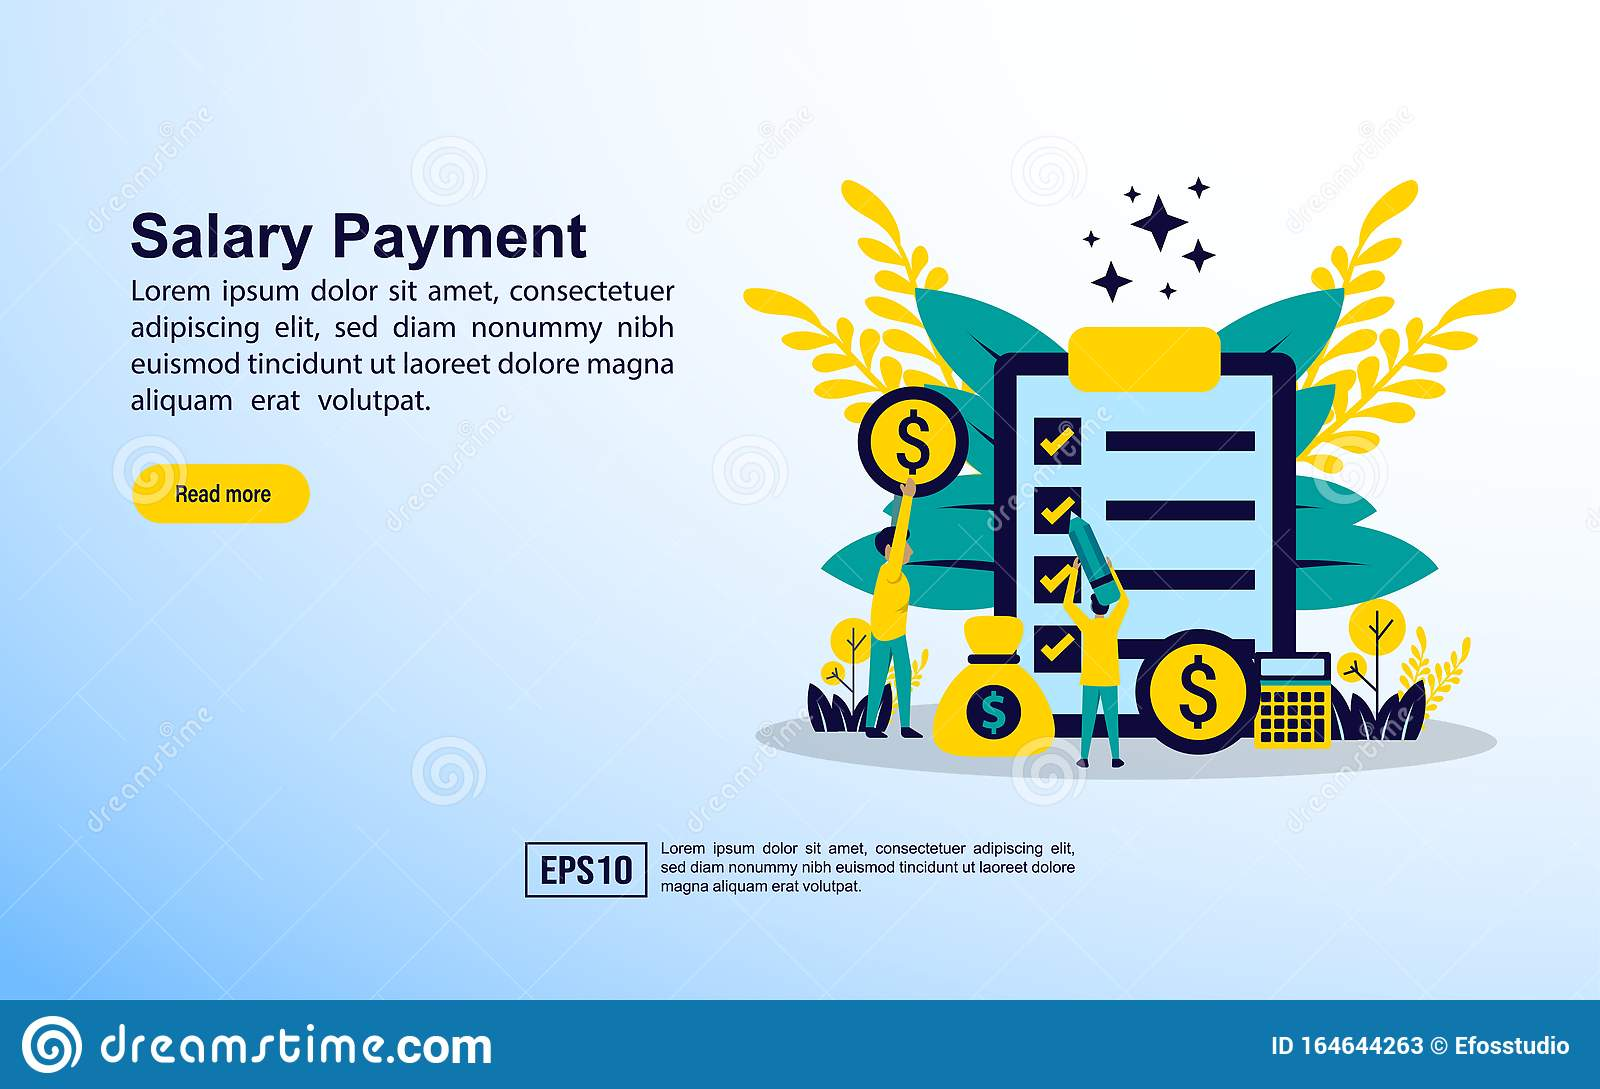 Salary Payment Concept With Icon And Character Template For Web Landing Page Banner Presentation Social Media Poster Stock Vector Illustration Of Currency Accounting 164644263